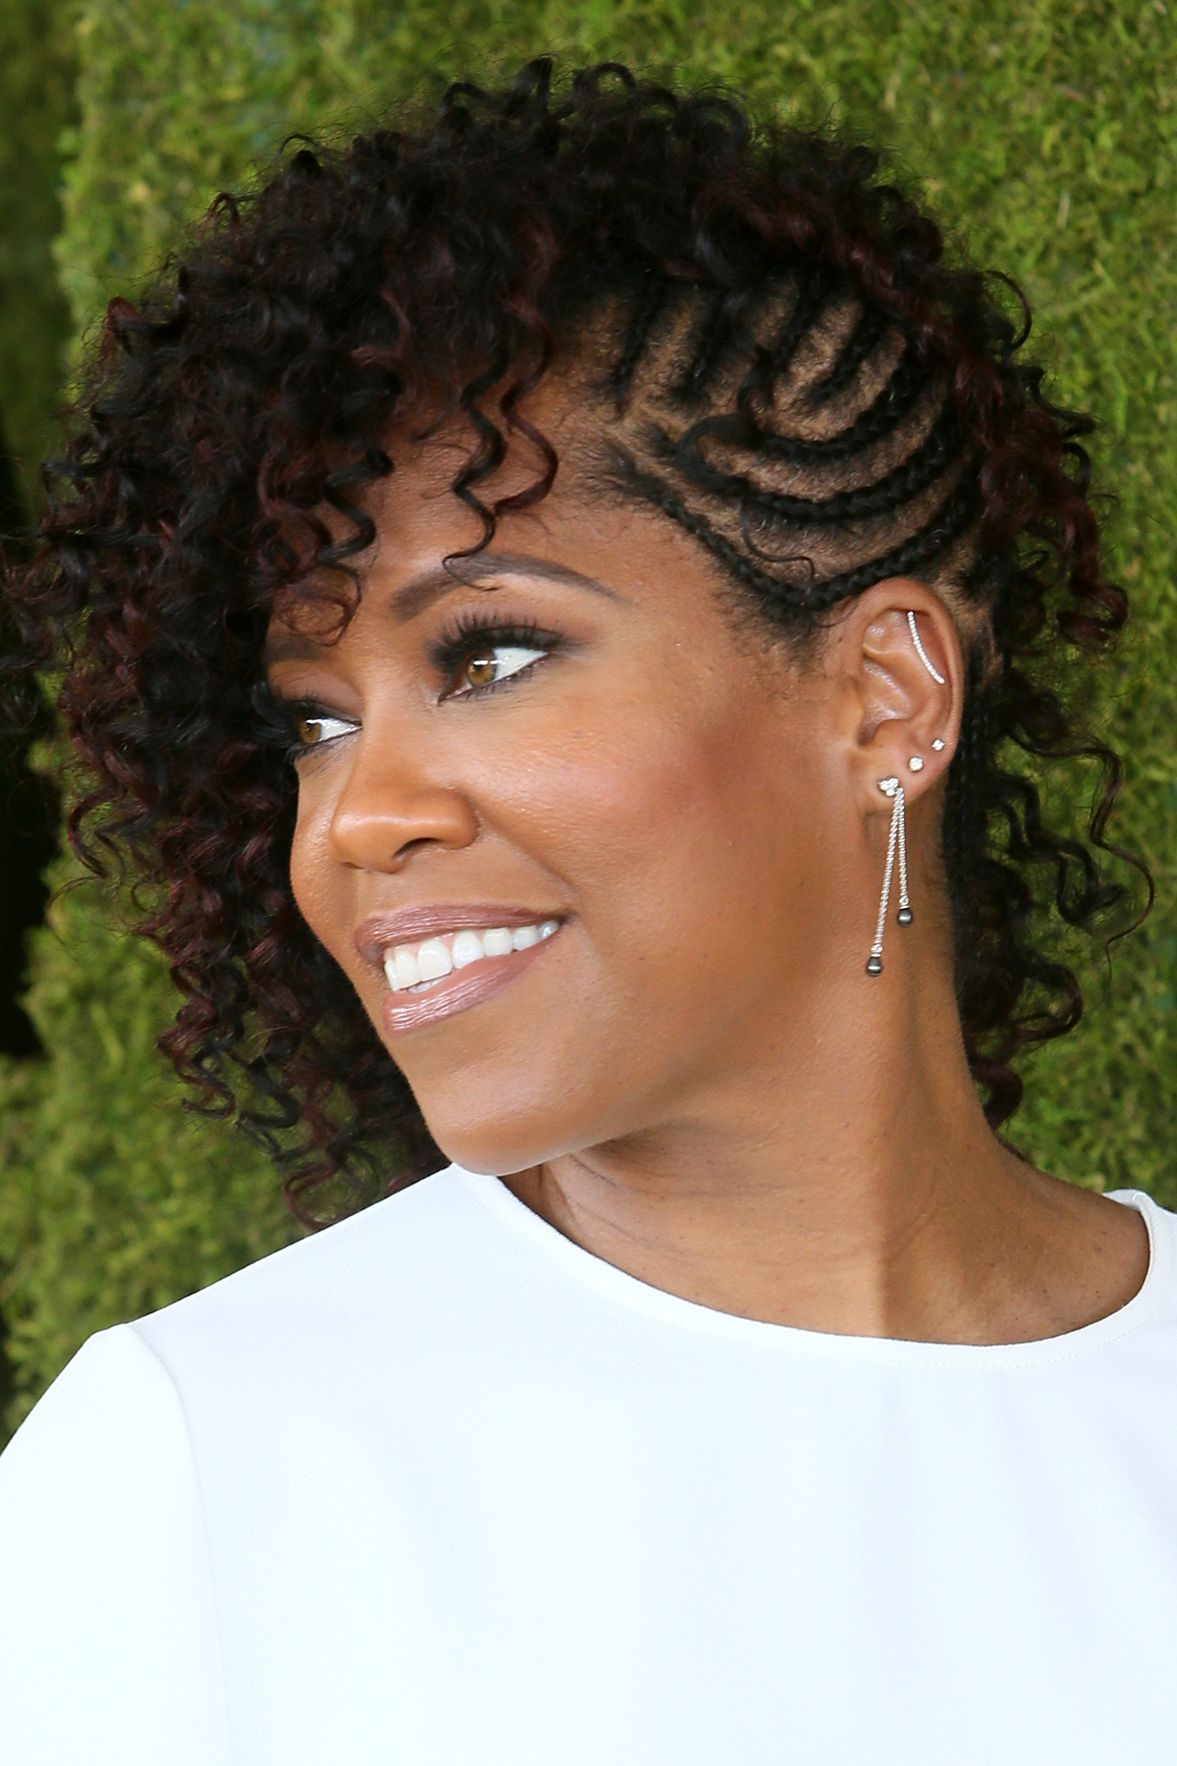 12+ Best Short Hairstyles for Black Women - Natural and Relaxed